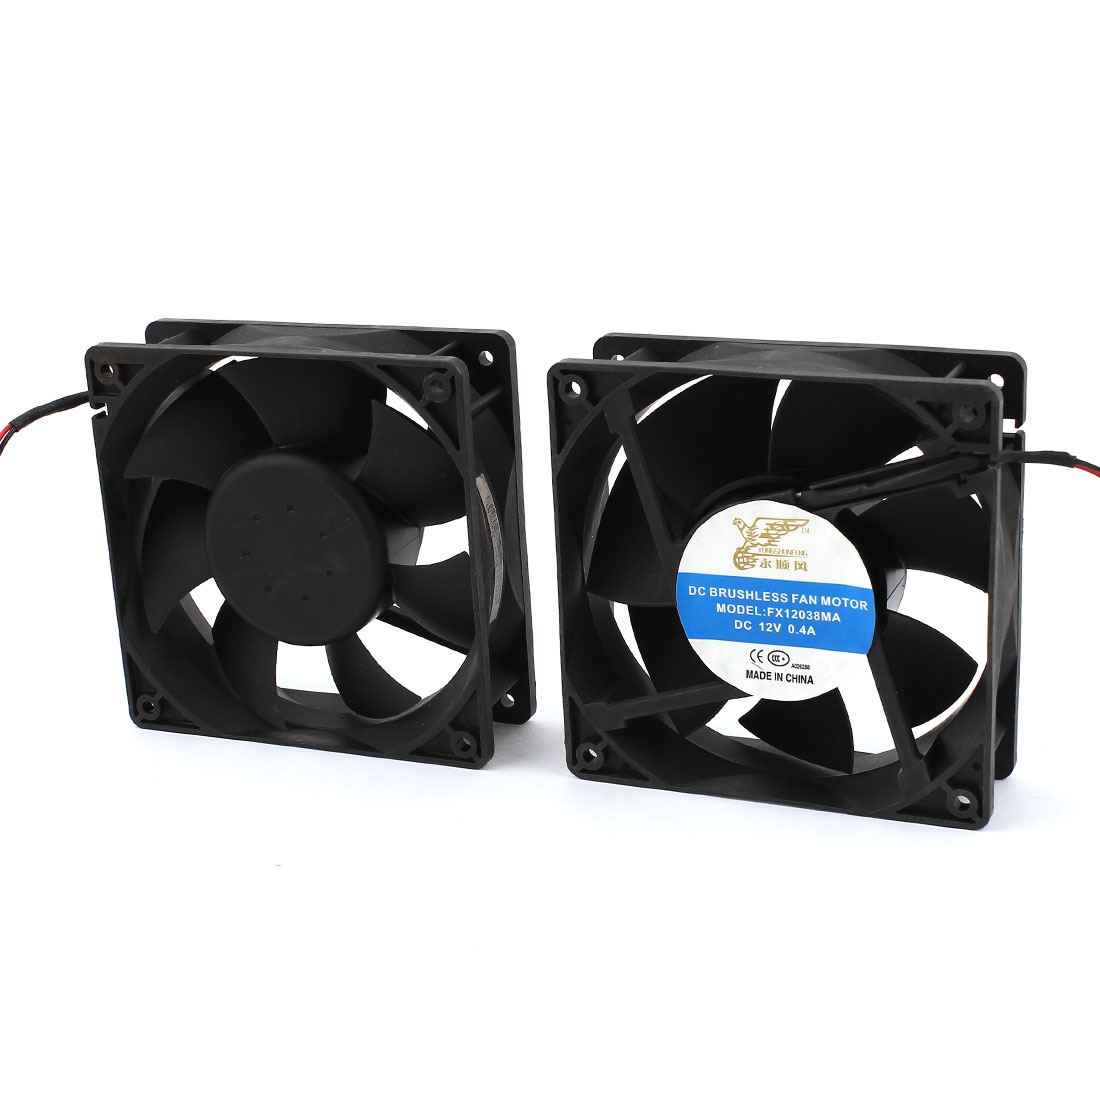 2 Pcs DC 12V 0.4A 120mmx38mm 12038 2-Wire Computer Case Cooling Fan Cooler Black